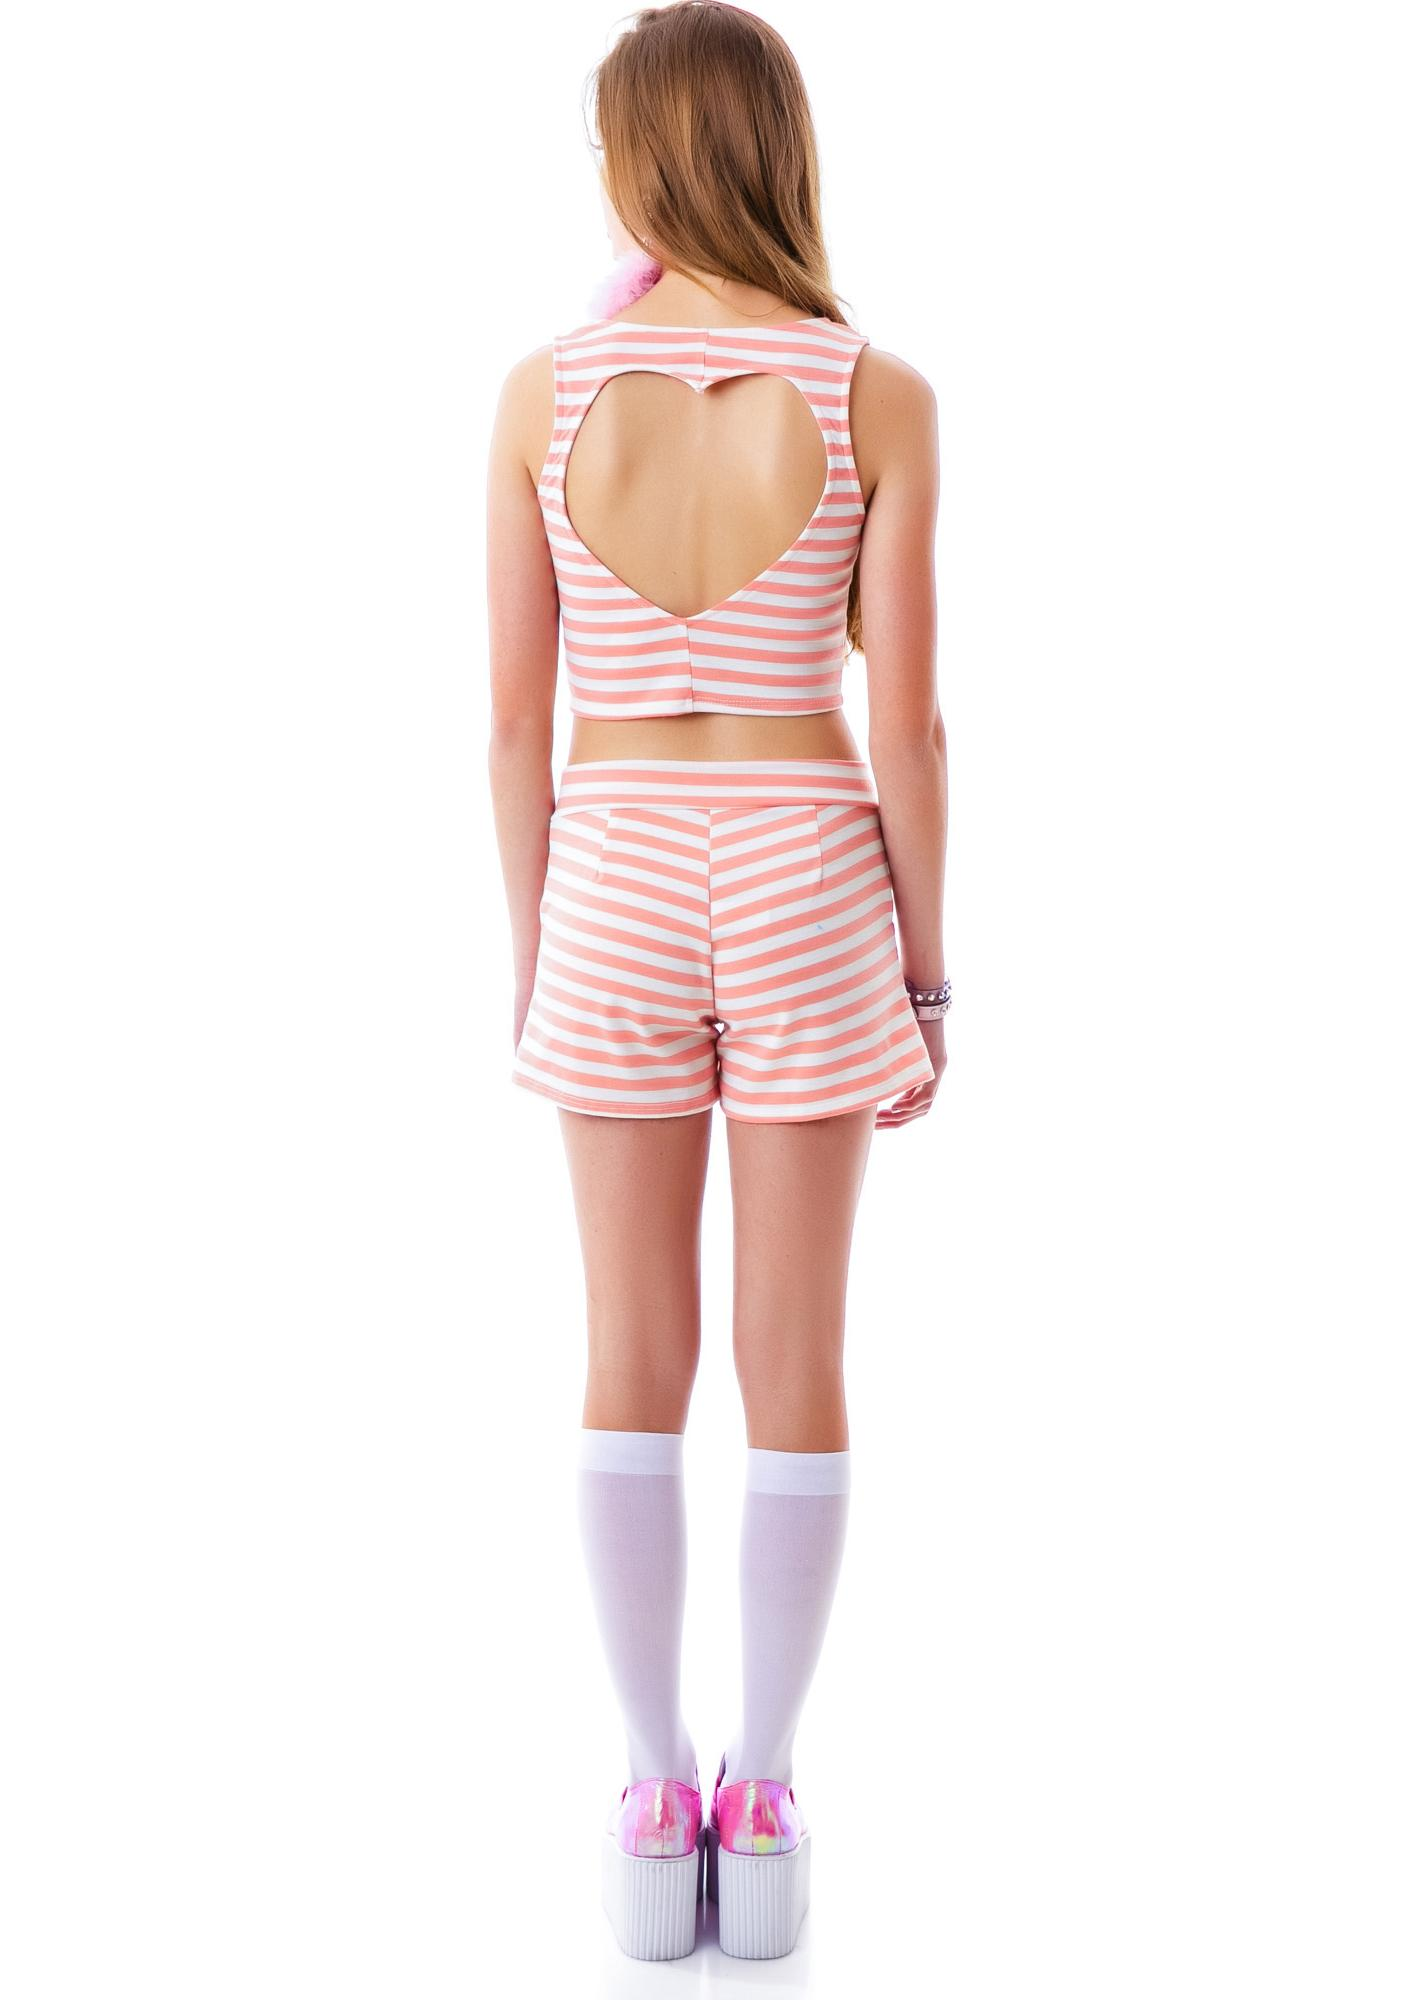 Flat Line Heart Cut Out Crop Top